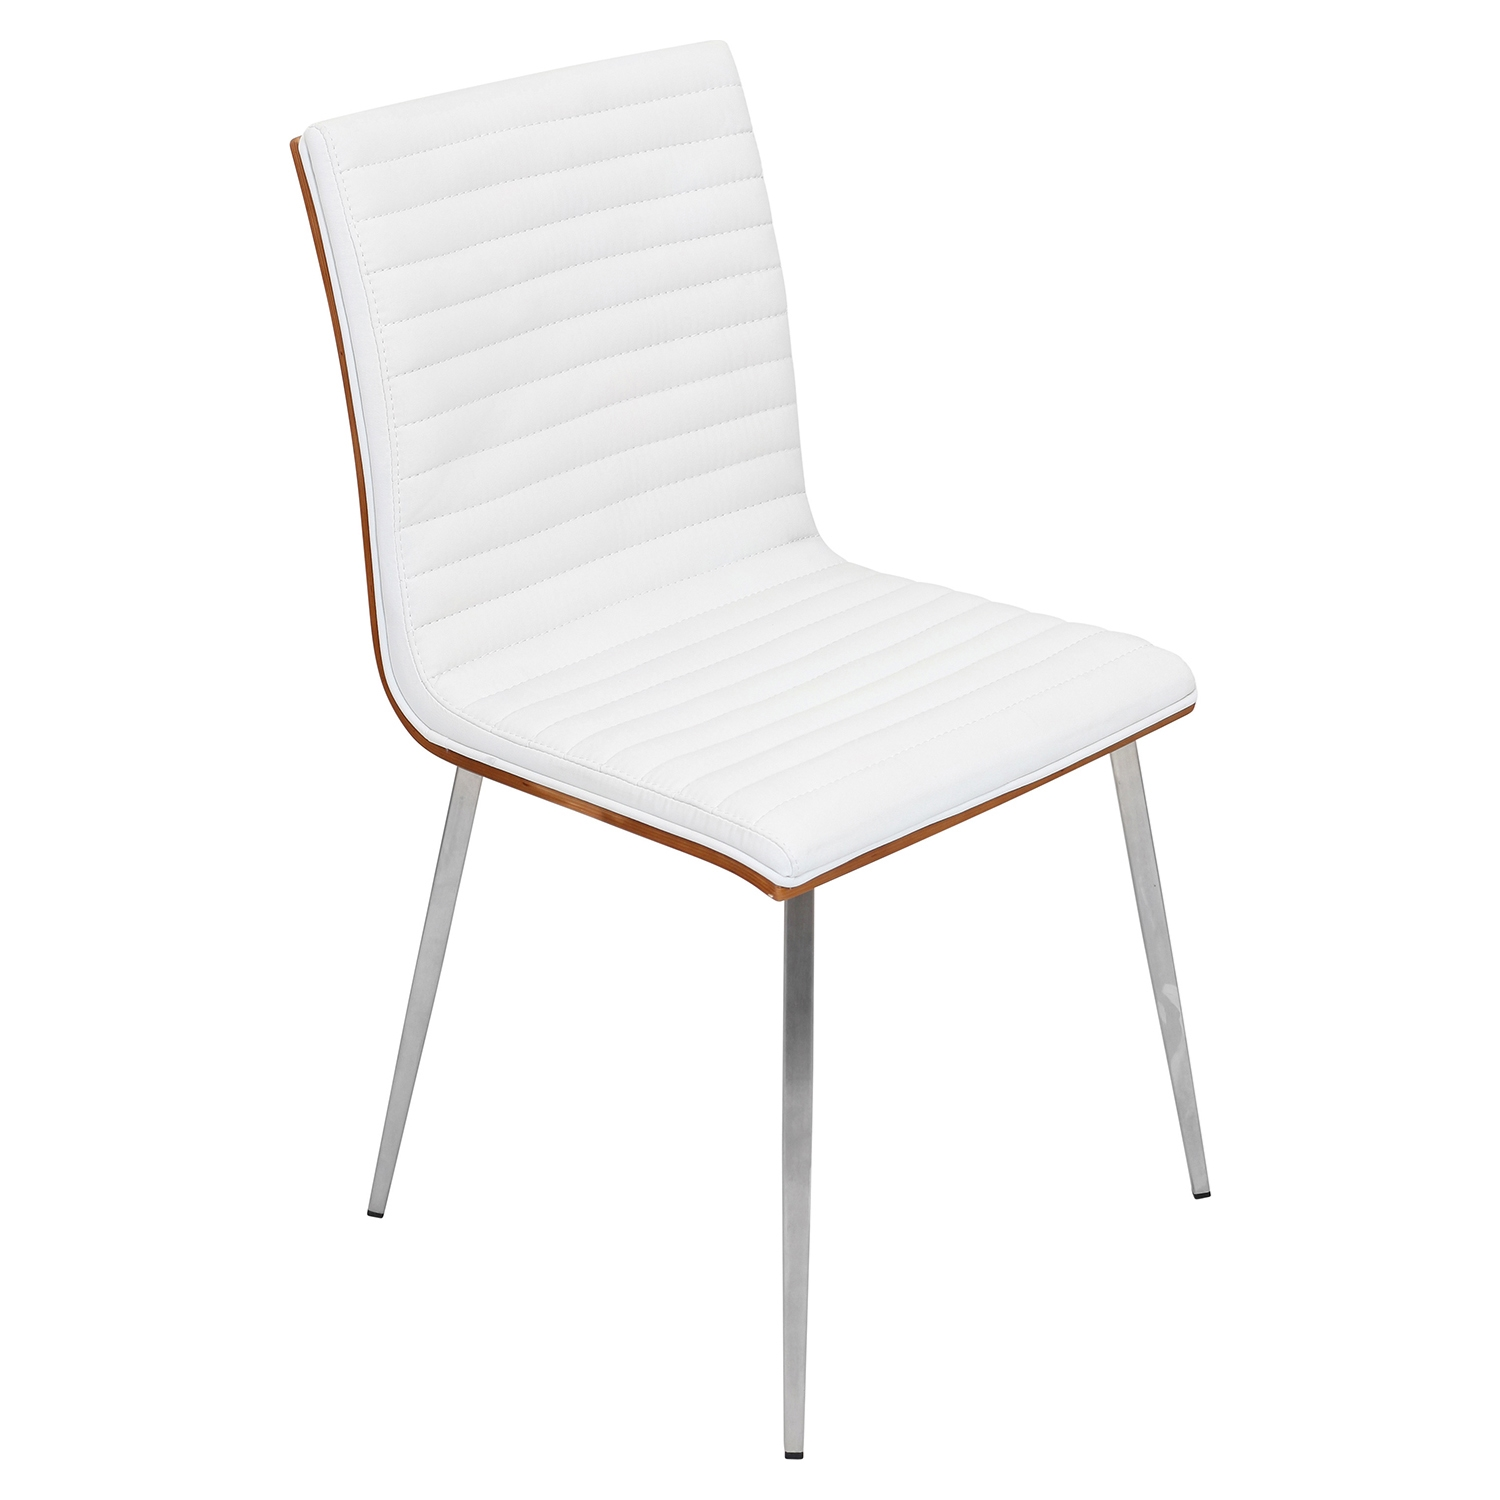 Mason Leatherette Dining Chair - Walnut, Off-White (Set of 2)